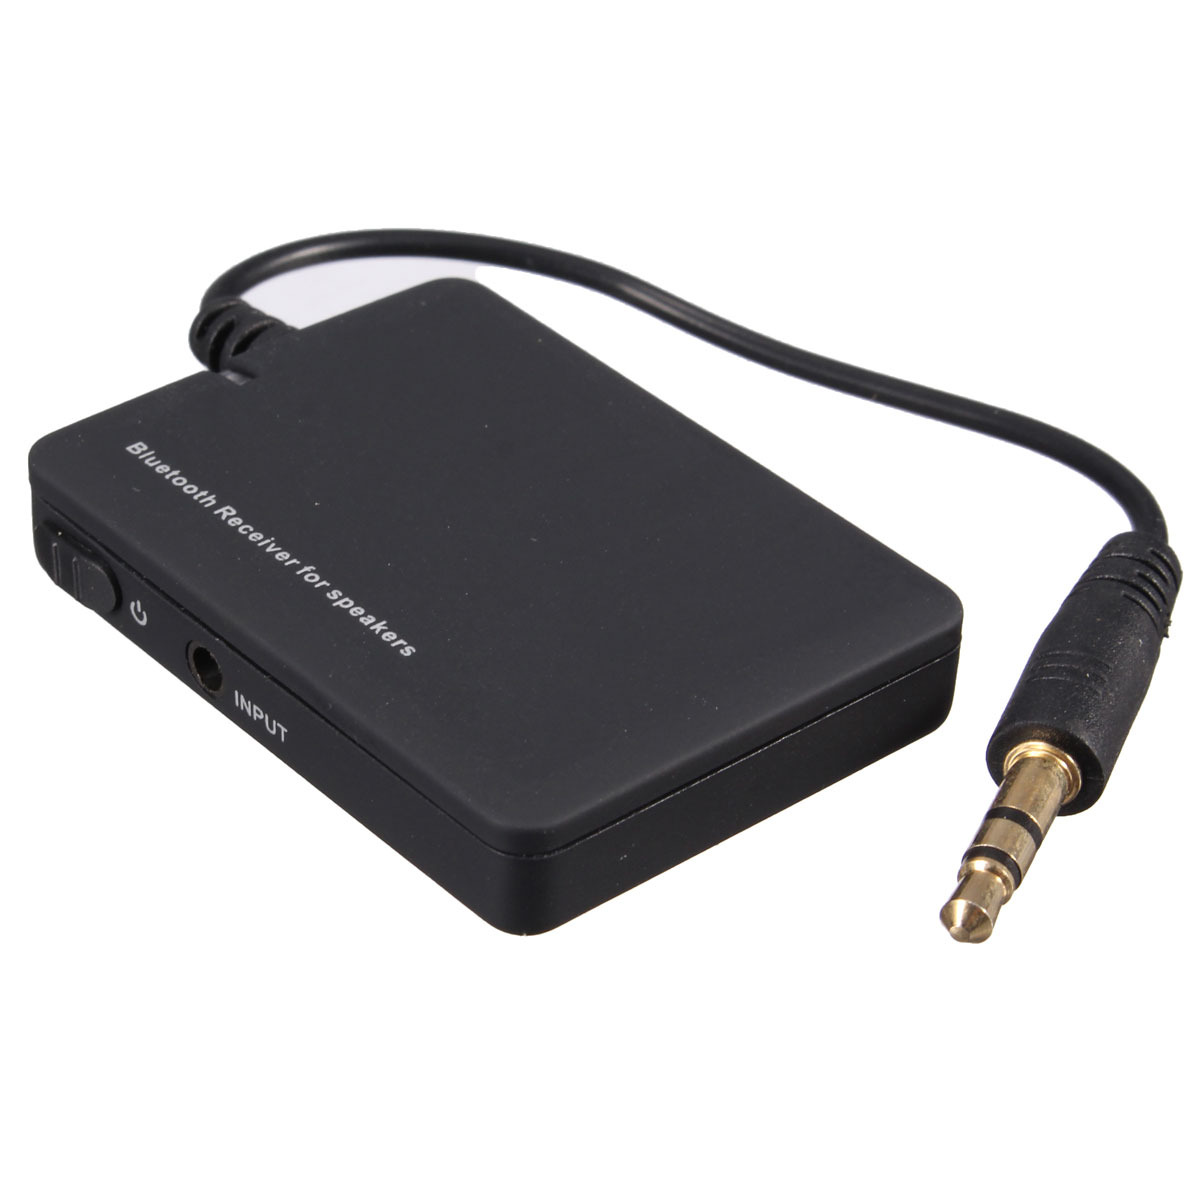 Grtsunsea ELEGIANT Wireless bluetooth 3.5mm A2DP Audio Stereo Music Receiver Adapter Home